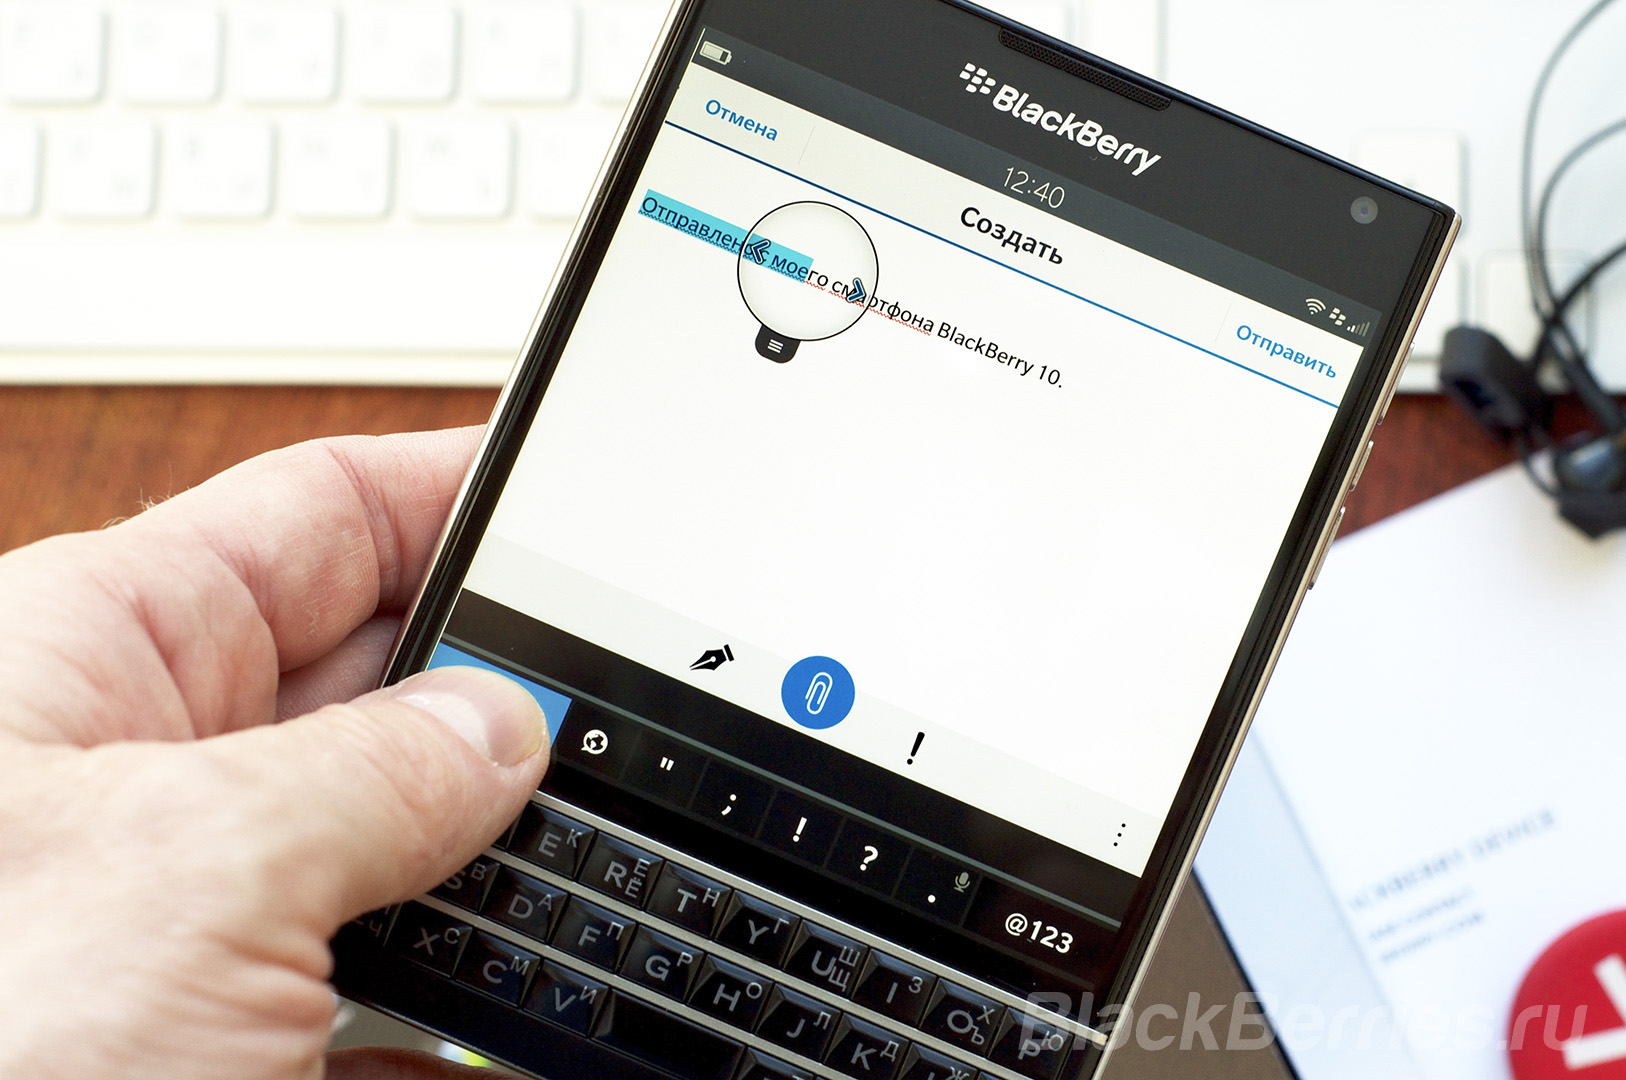 BlackBerry-Passport-Review-2016-20